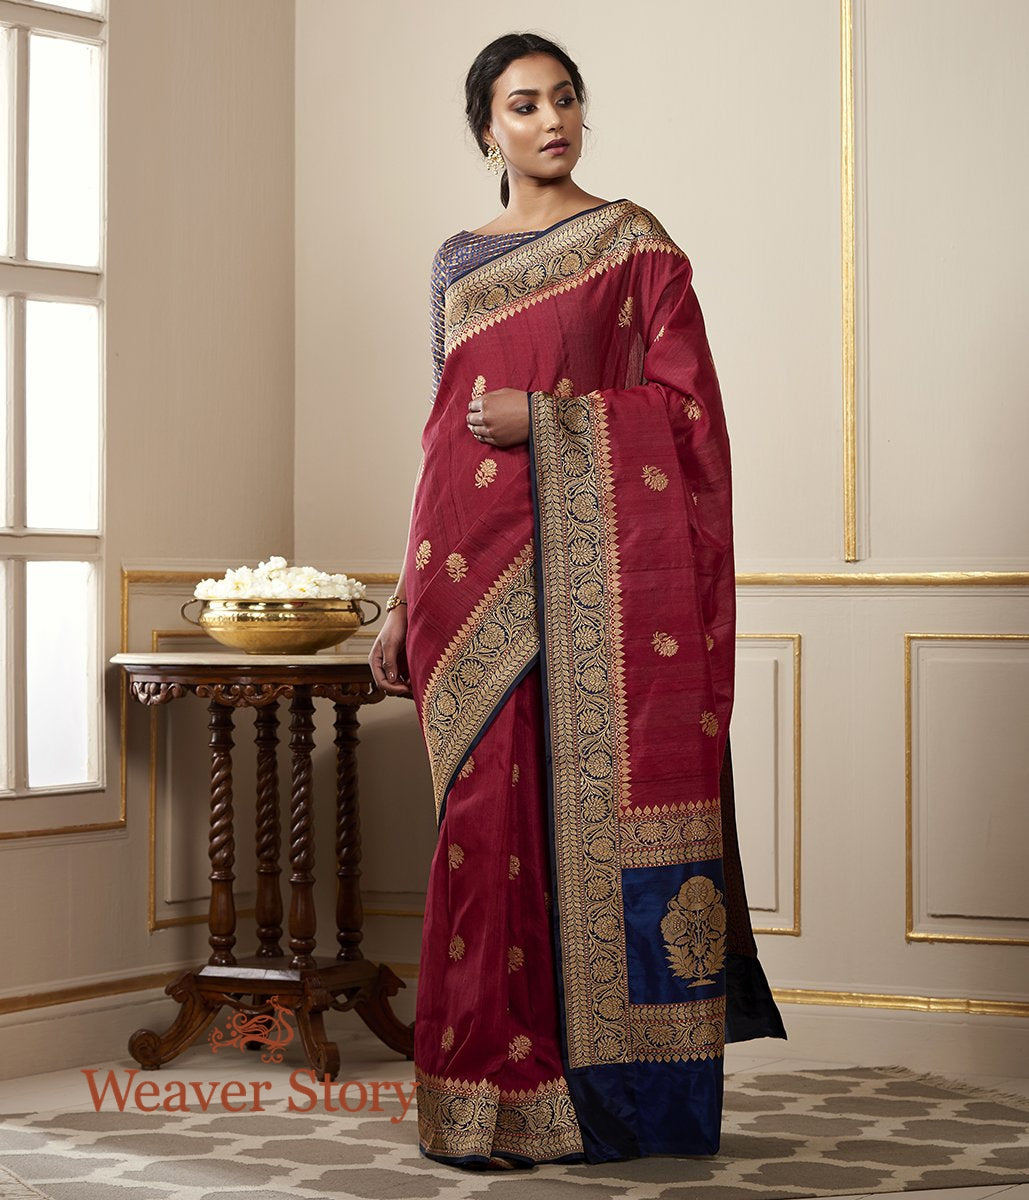 Handwoven Maroon Tusser Saree with Blue Floral Border